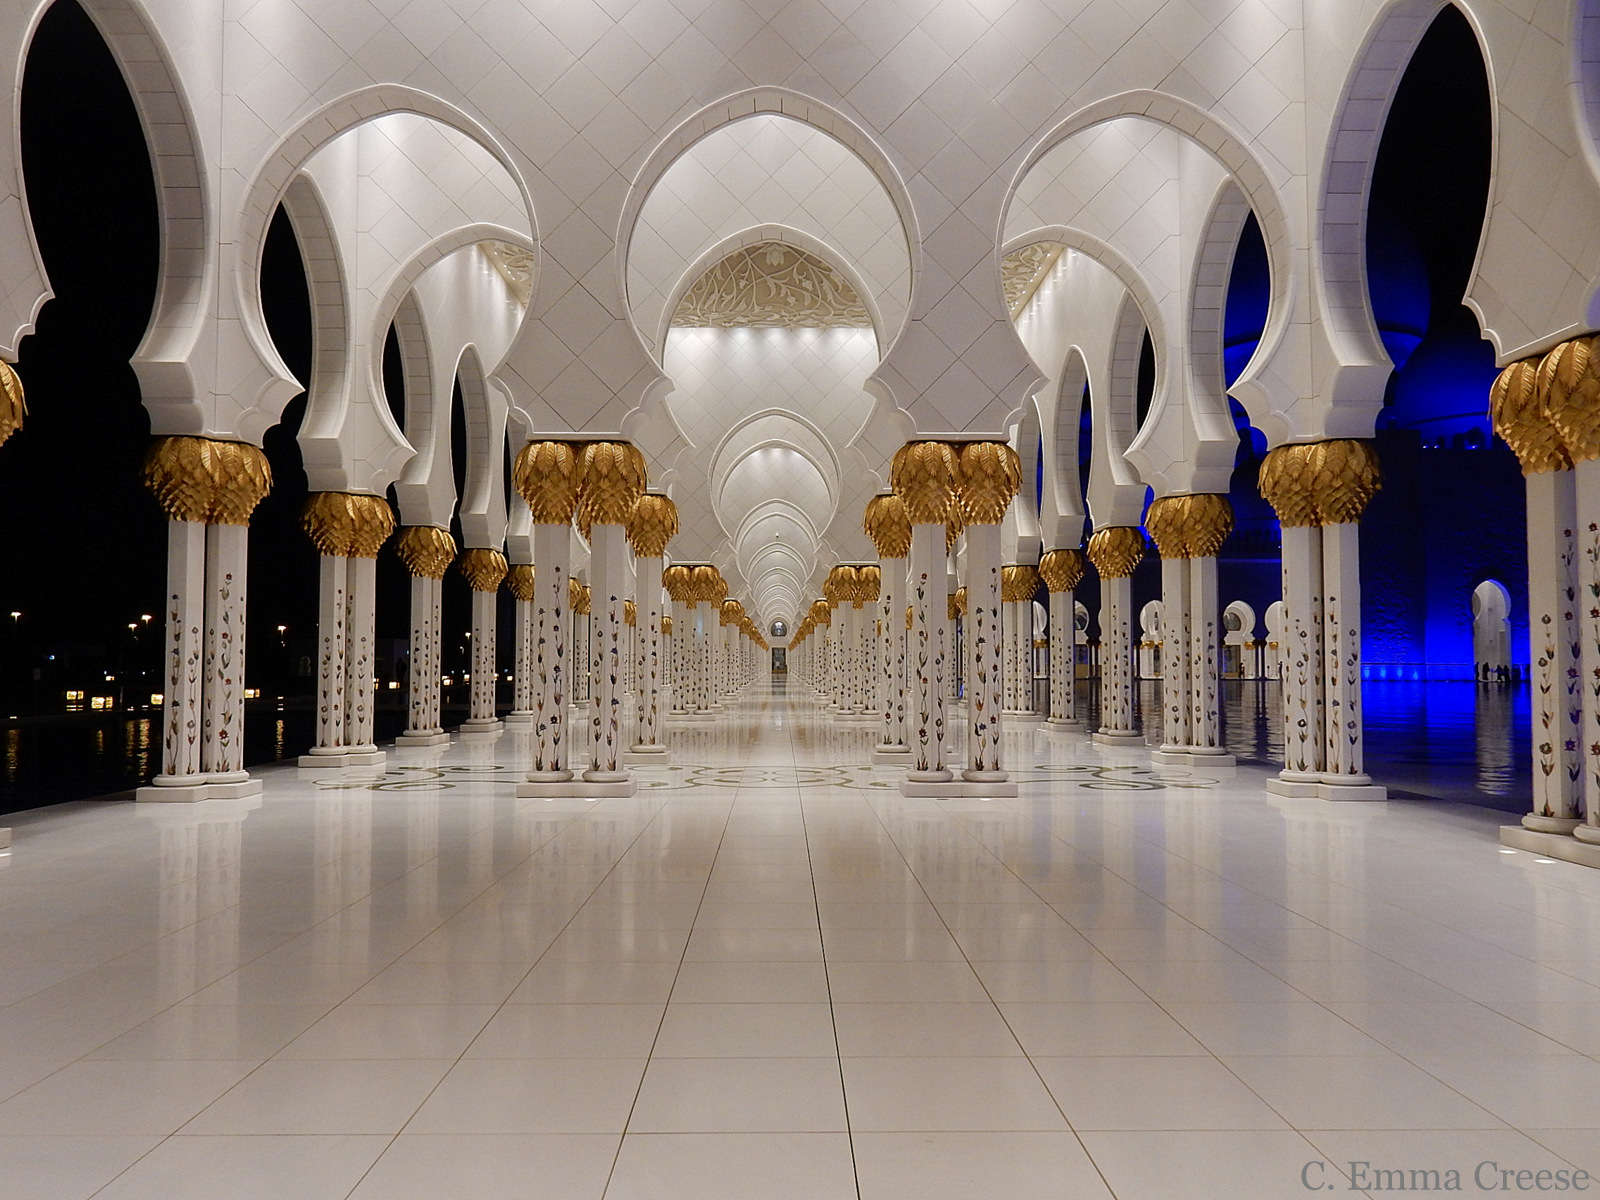 Blogger visit to the Abu Dhabi Grand Mosque: An opulent and etheral architectural marvel (free entry)